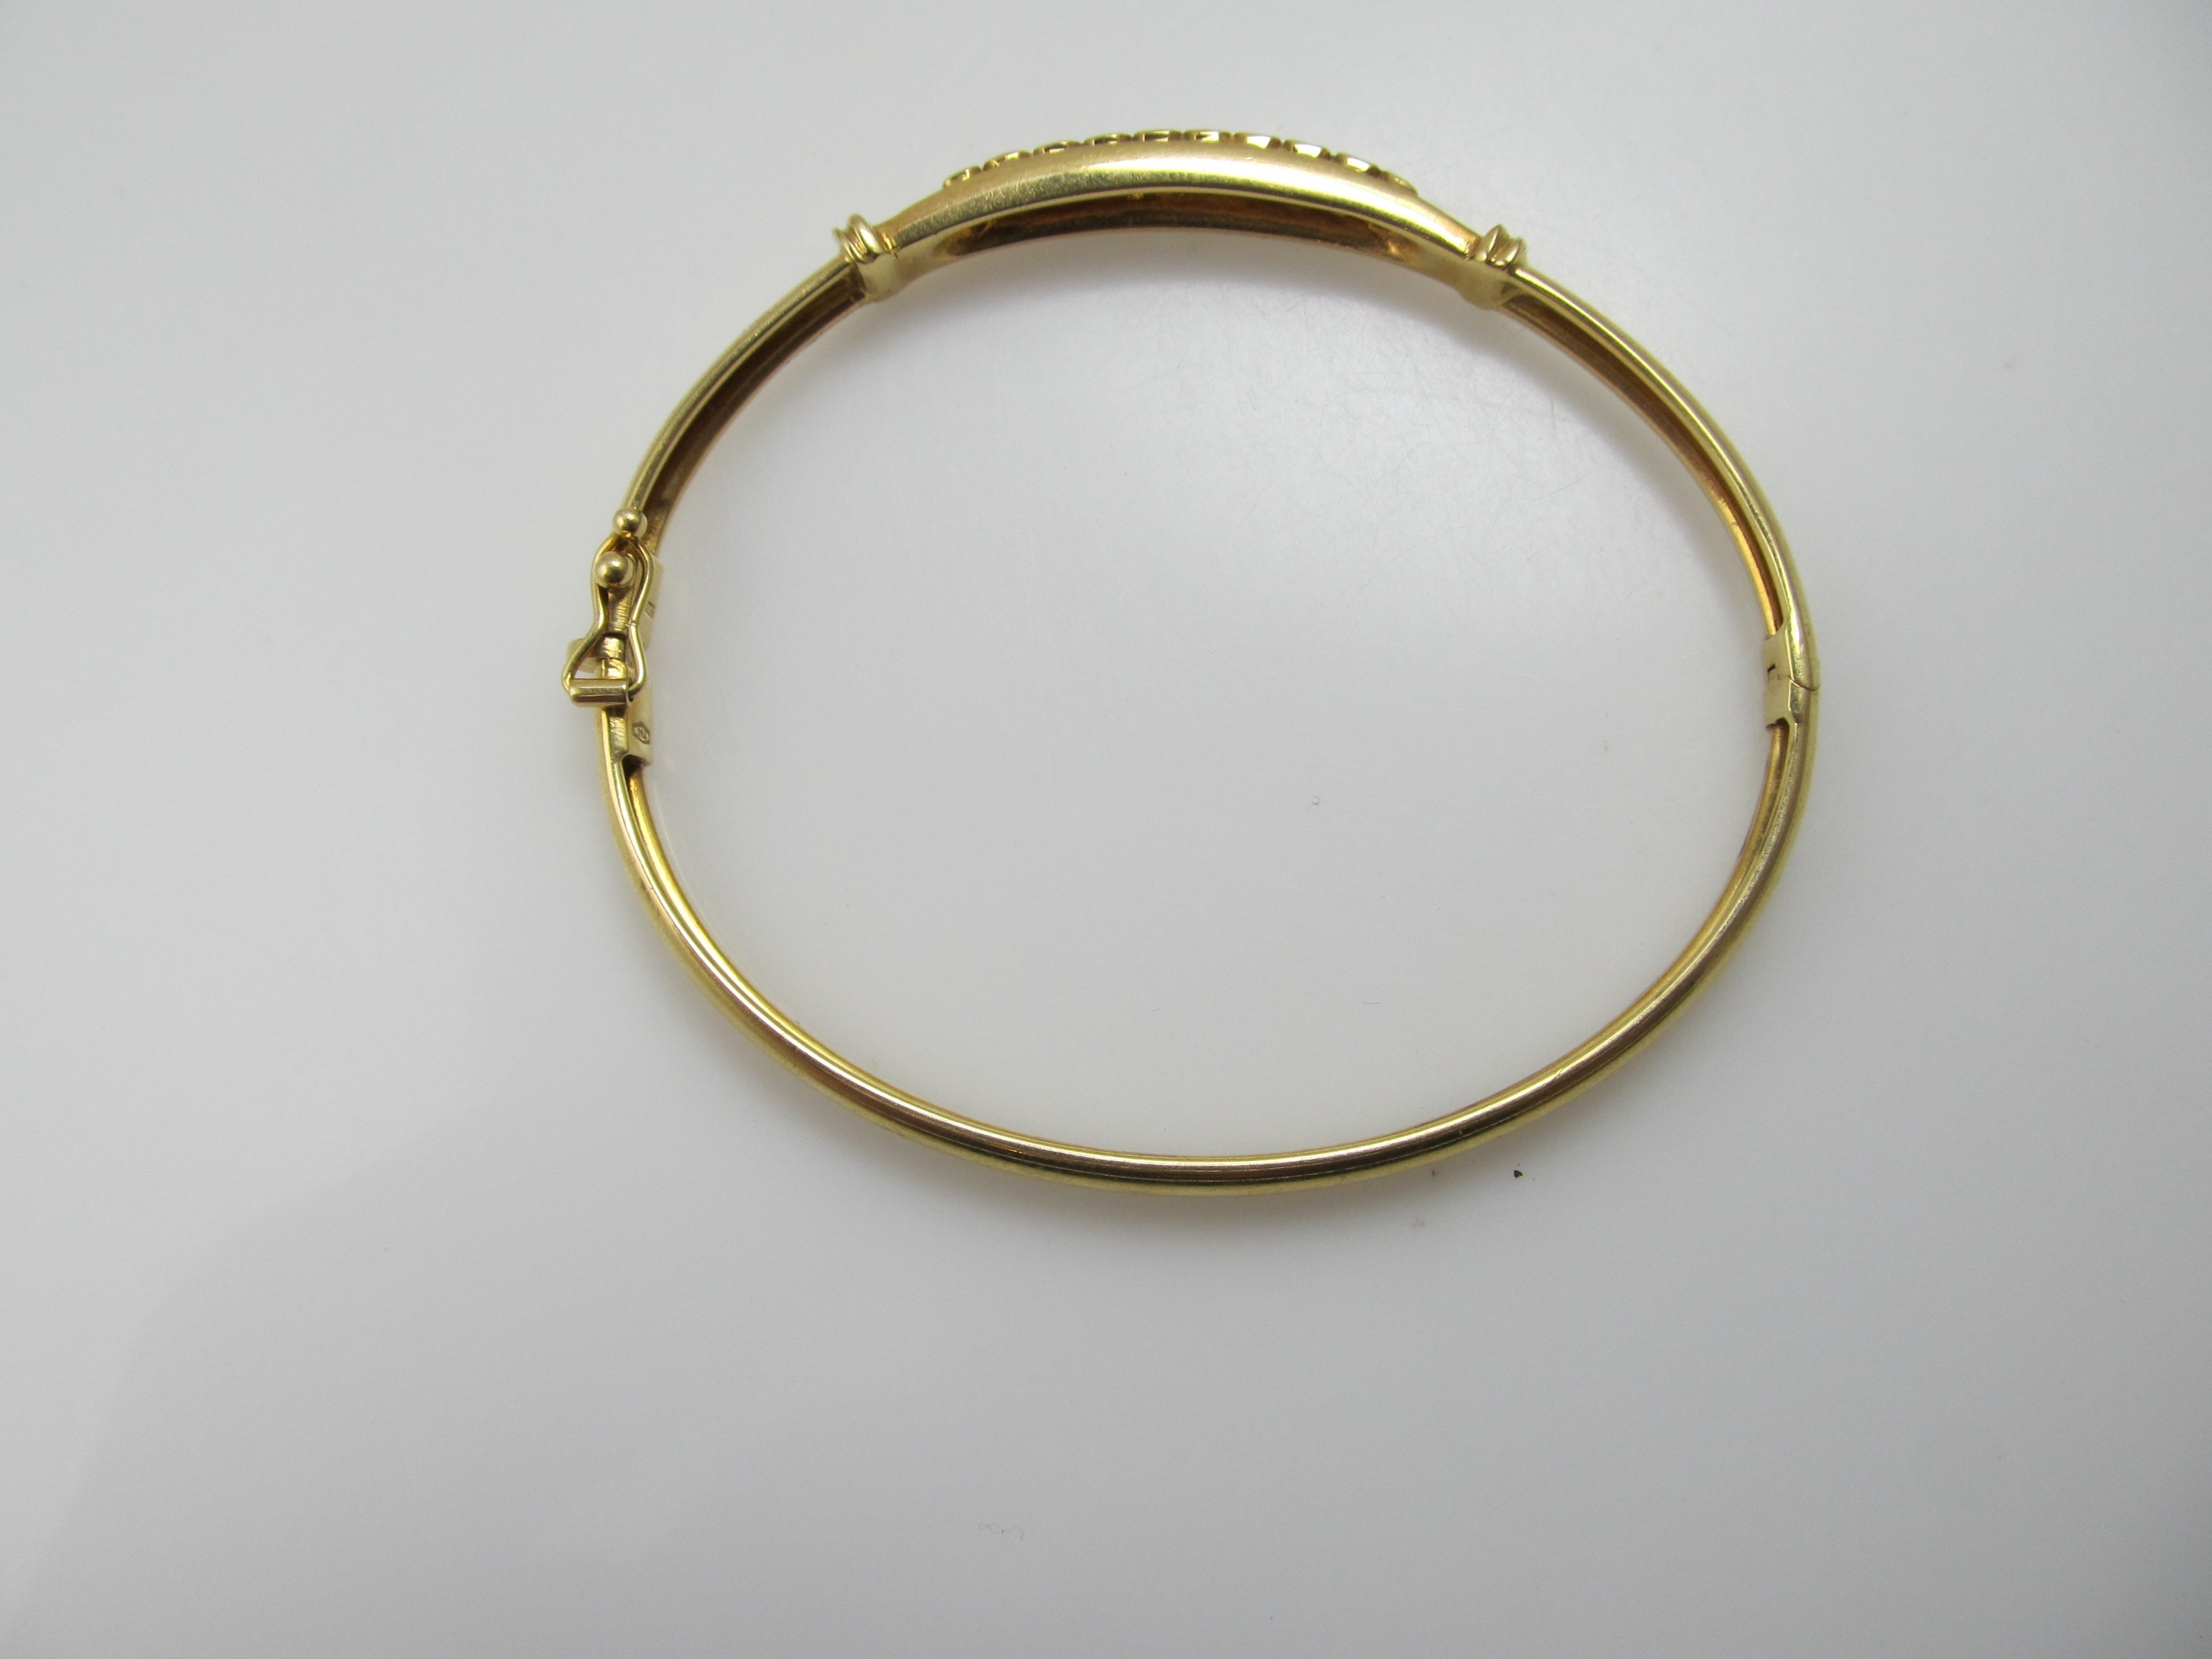 by bangles yellow buy bangle kalyan candere jewellers product shiaivali gold